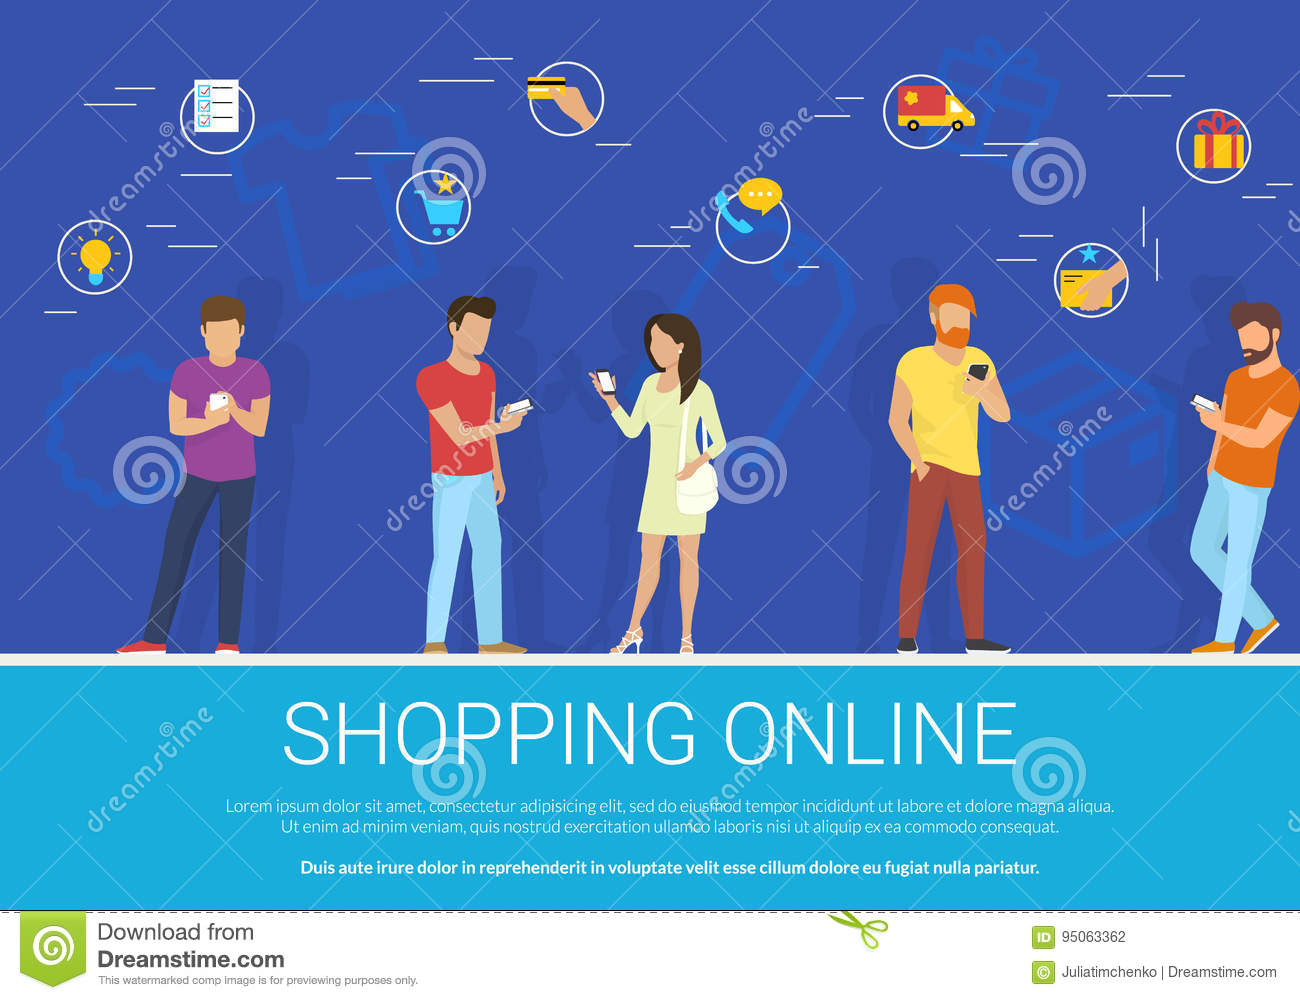 Shopping online concept vector illustration of group of people using mobile smartphone for purchasing goods